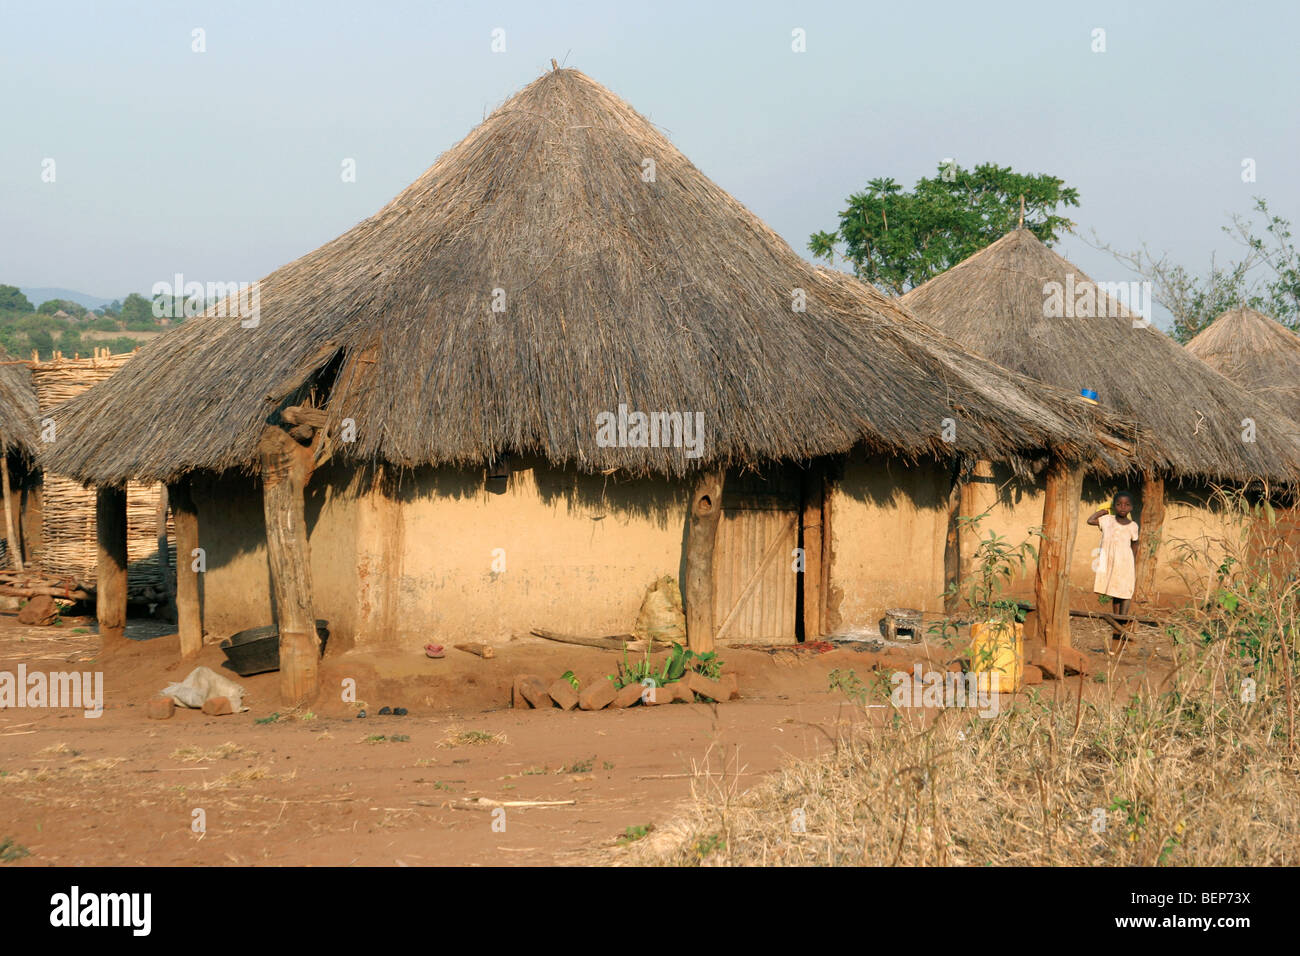 Primitive Huts With Thatched Roofs In Village In Zambia